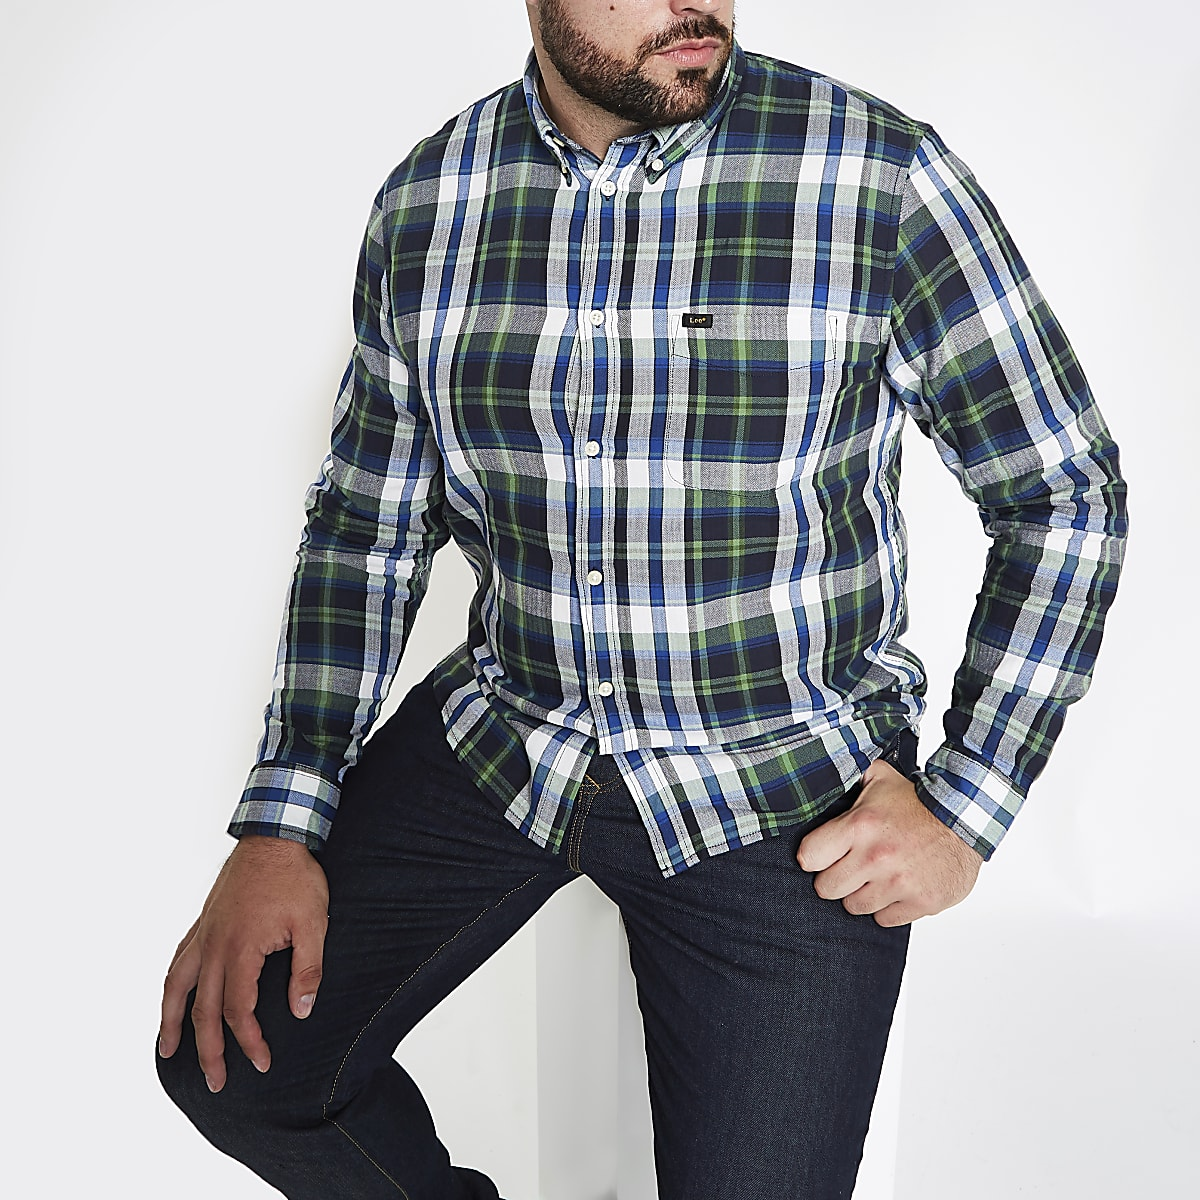 Lee Big and Tall green check shirt